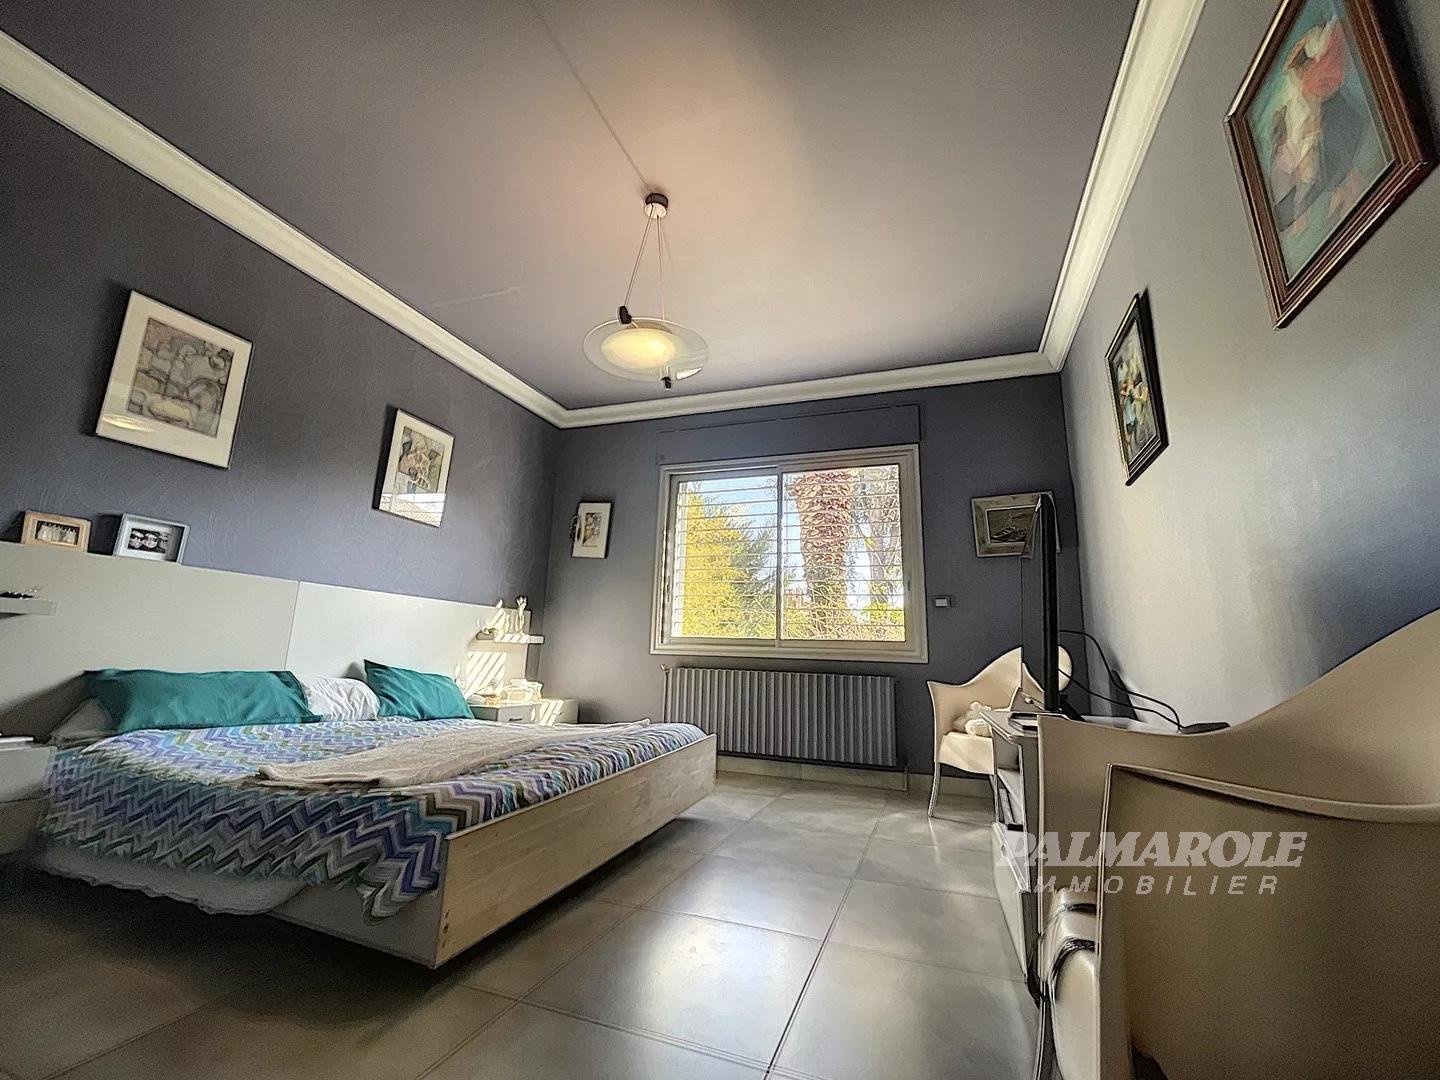 Sale Terraced house - Perpignan Centre Ville